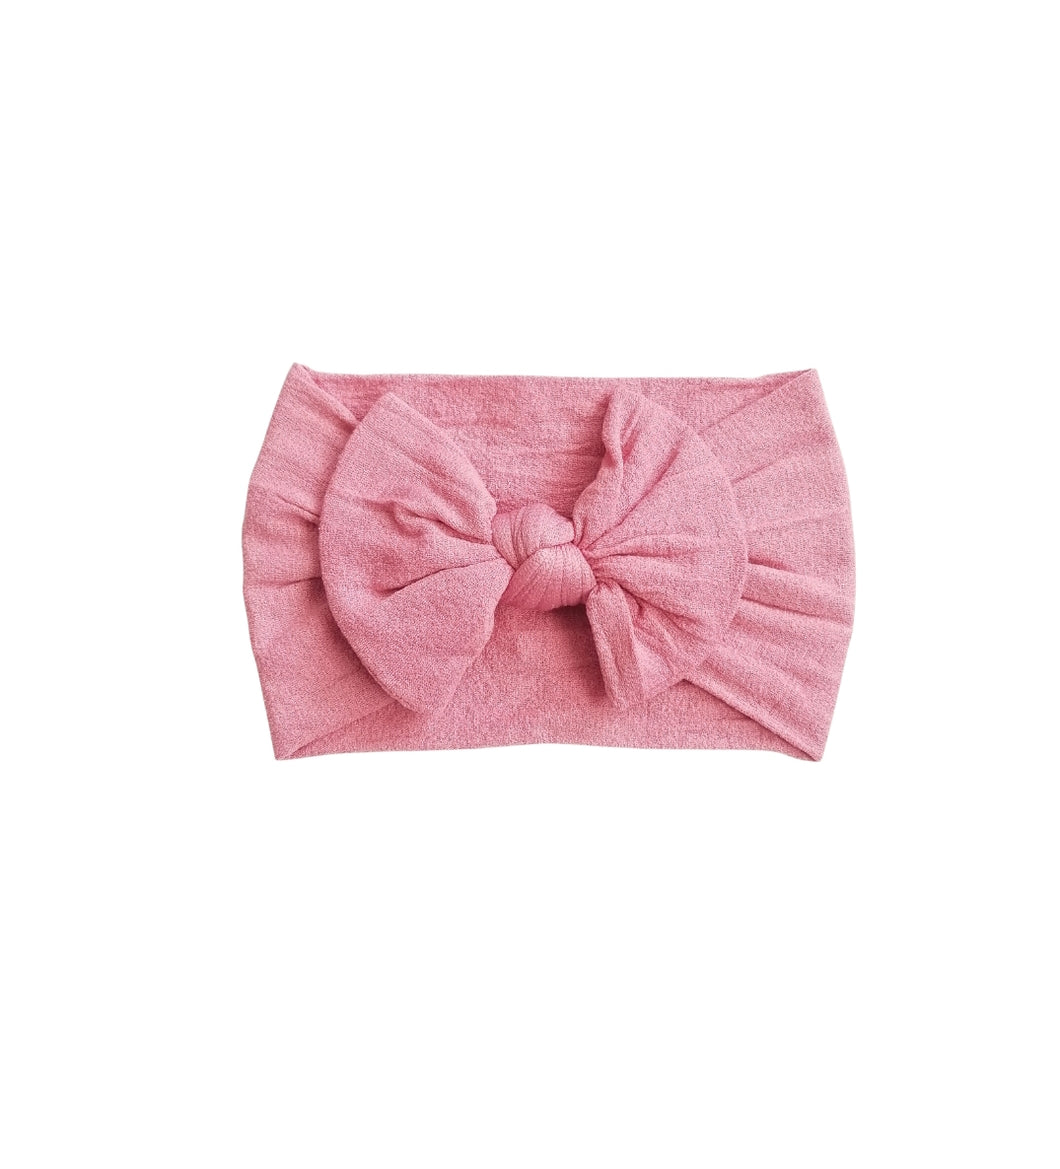 Nylon Bow Headwrap Rose Pink - Adassa Rose